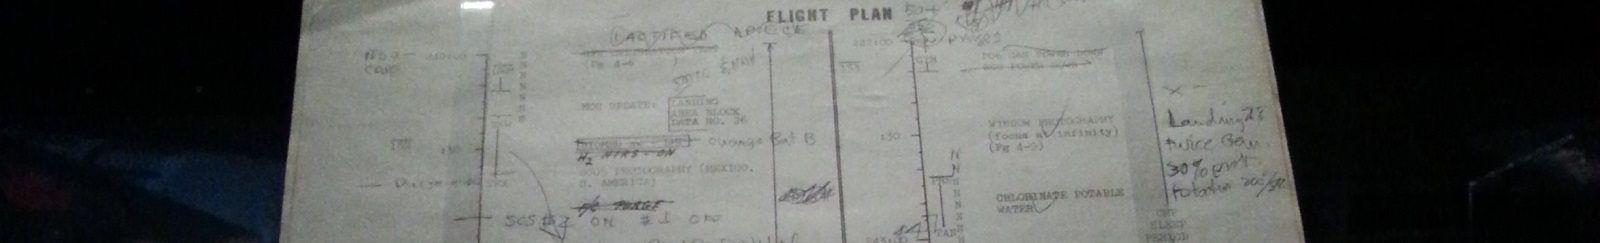 Space Flight Plan